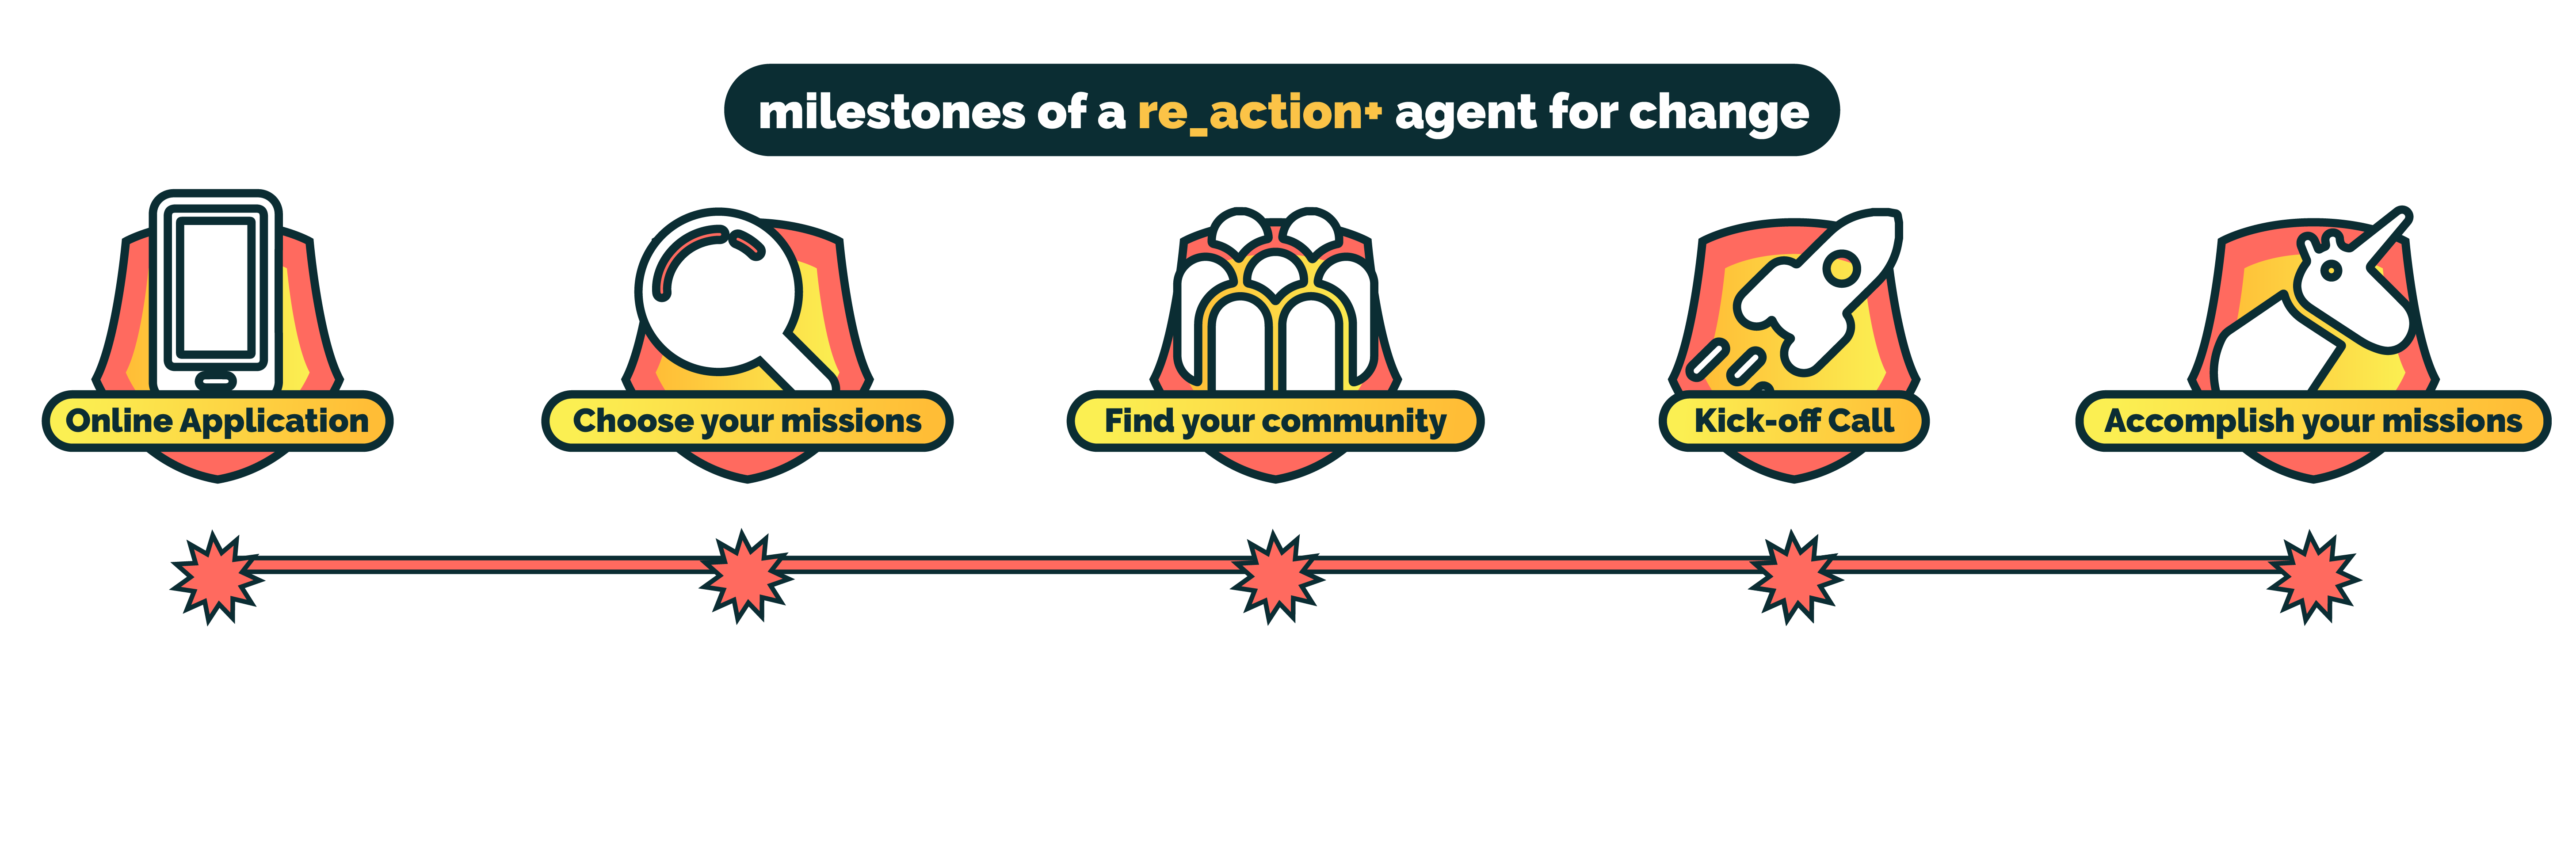 What milestones do you go through in re_action+? 1) Online Application, 2) Choosing your Missions, 3) Join Your Community, 4) Kick Off Call, 5) Completing your missions!